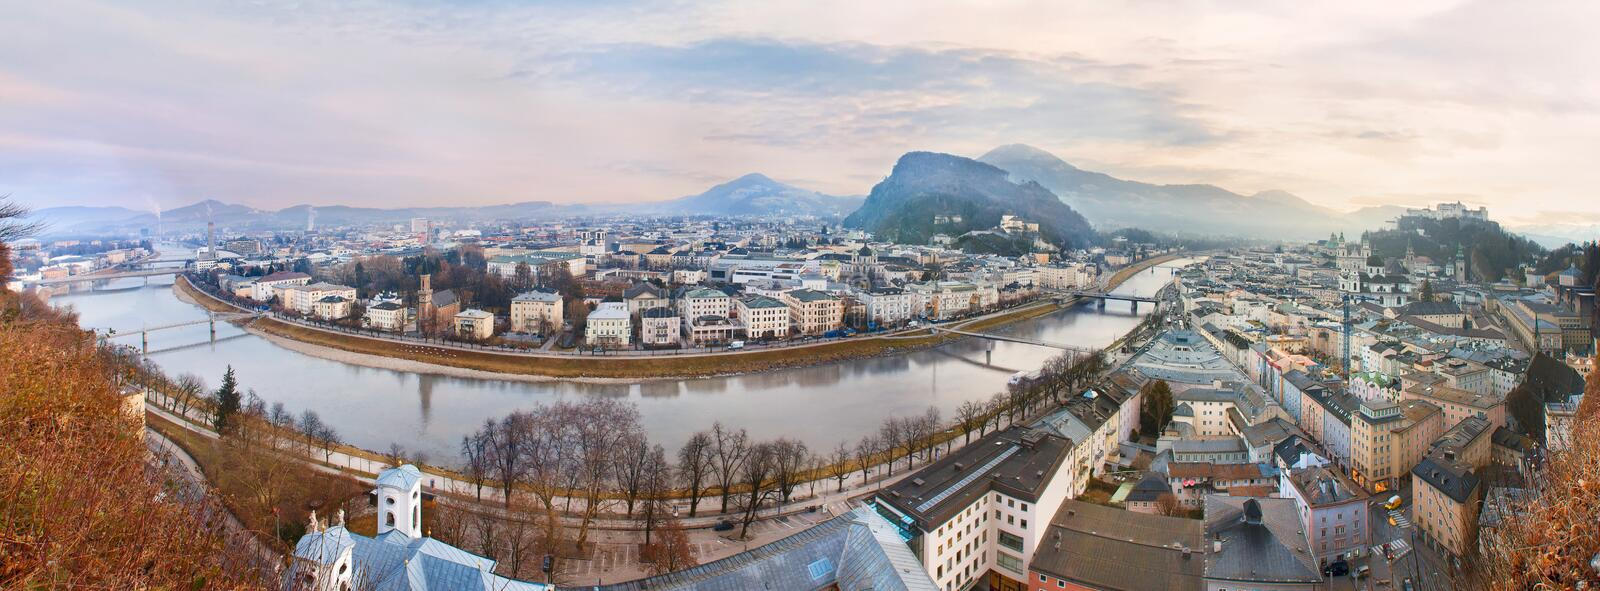 Sunrise view of the historic city Salzburg. Panoramic view of Salzburg, Salzburger Land, Austria stock images